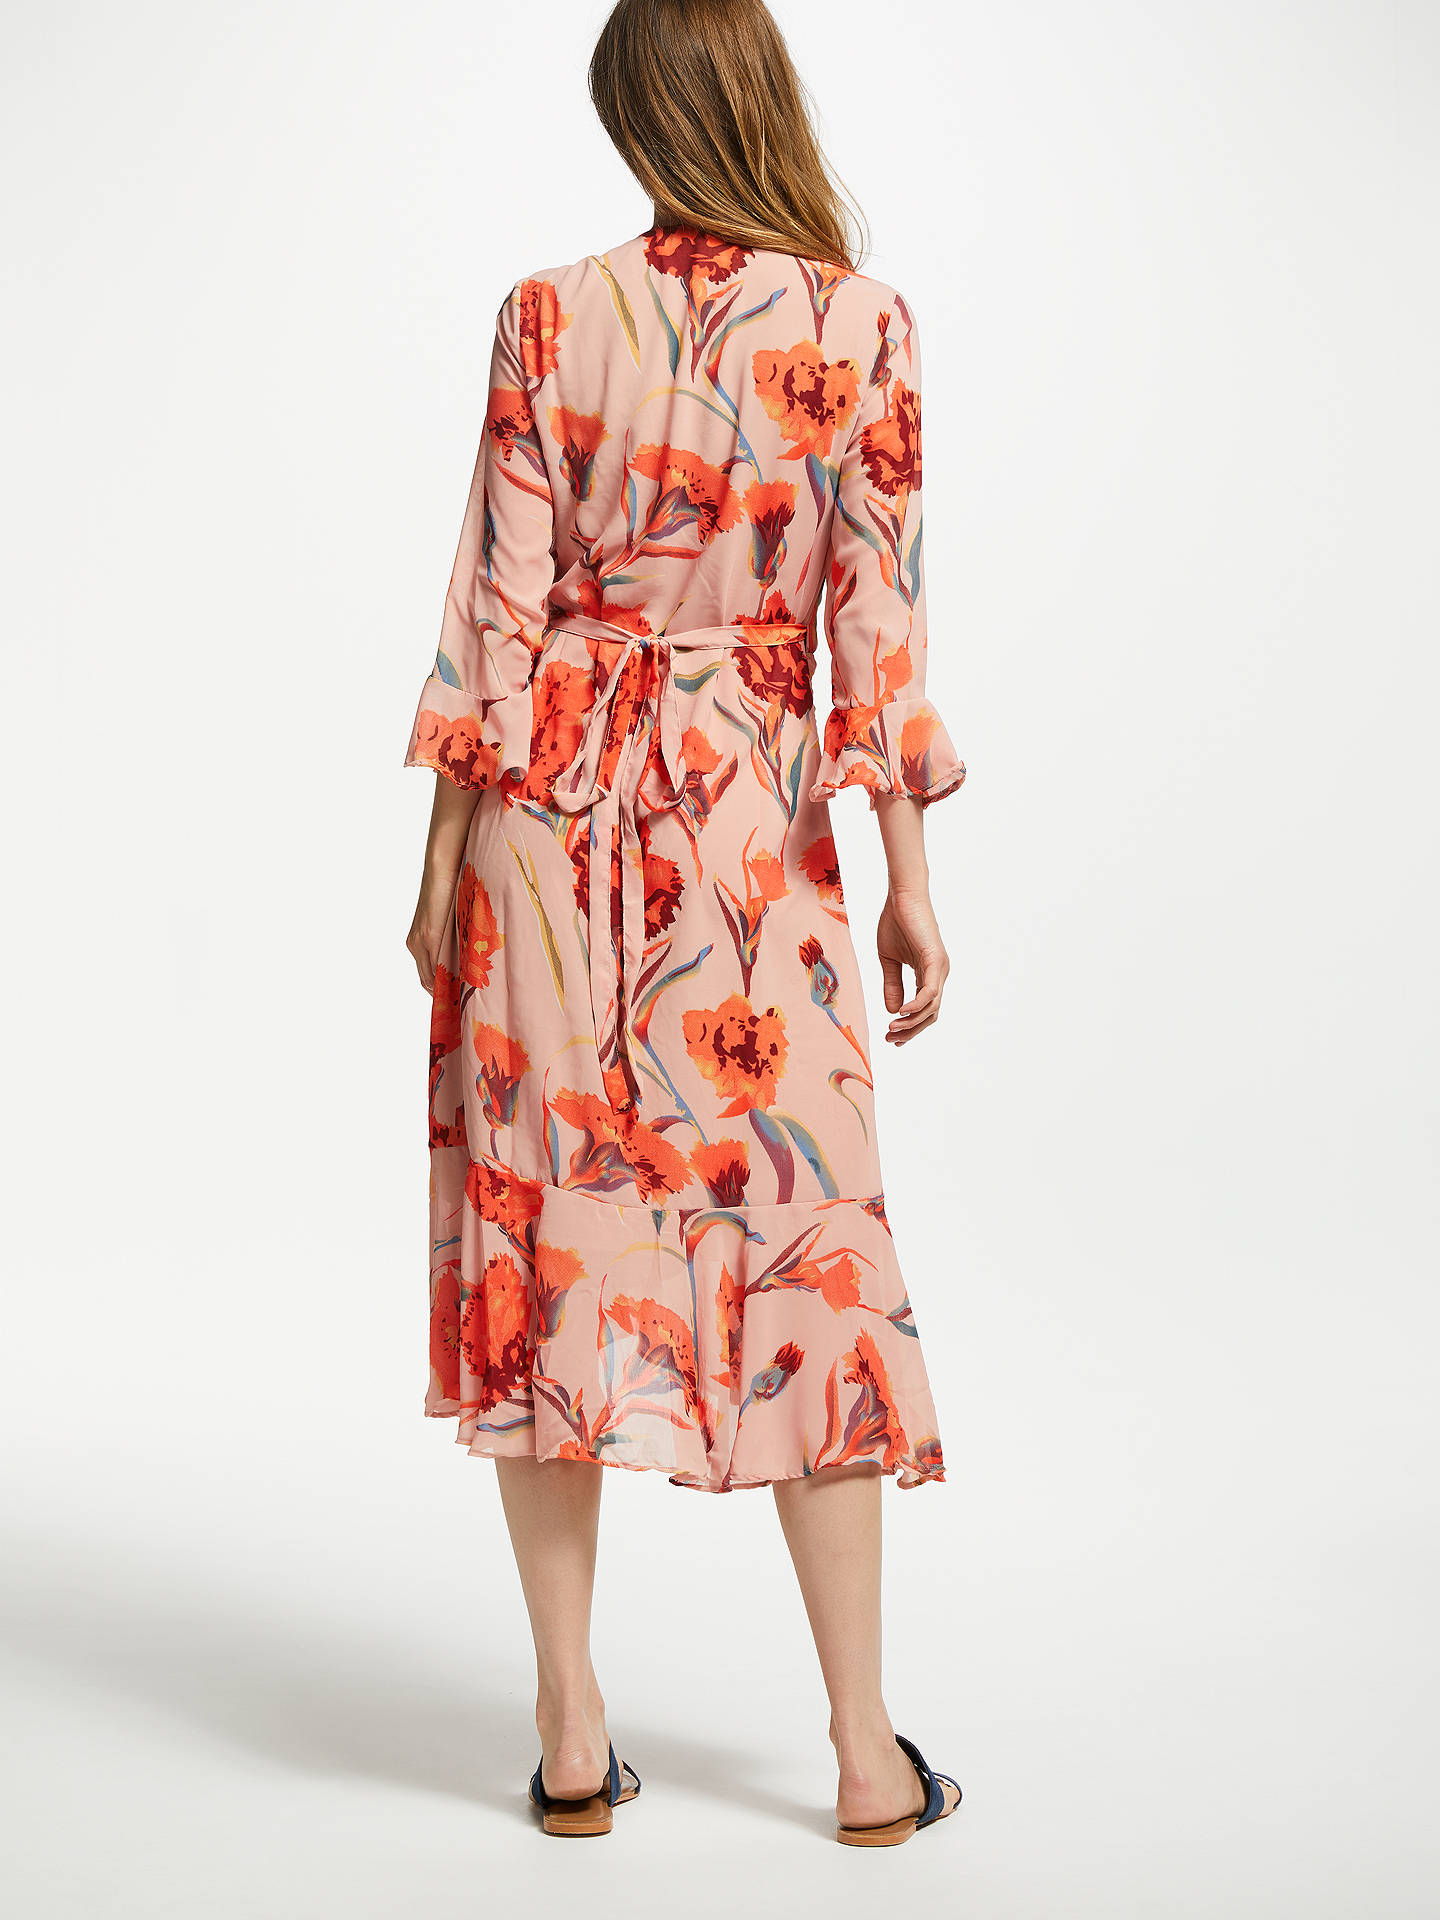 6cd2a63334 ... Buy Y.A.S Cacco Floral Print Wrap Dress, Multi, M Online at  johnlewis.com ...